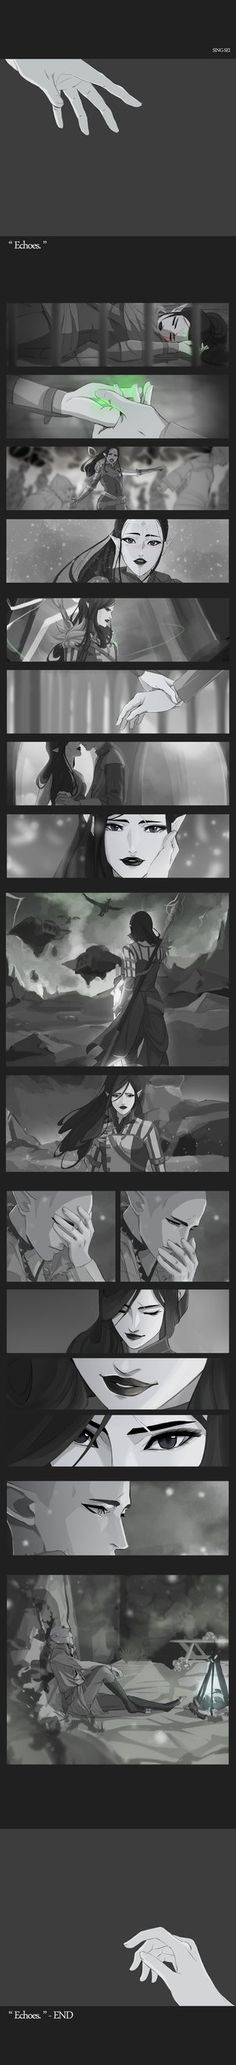 Dragon Age: Inquisition, Seth and Solas dancing at the Winter Palace Post on Tumblr: sing-sei.tumblr.com/post/10968…